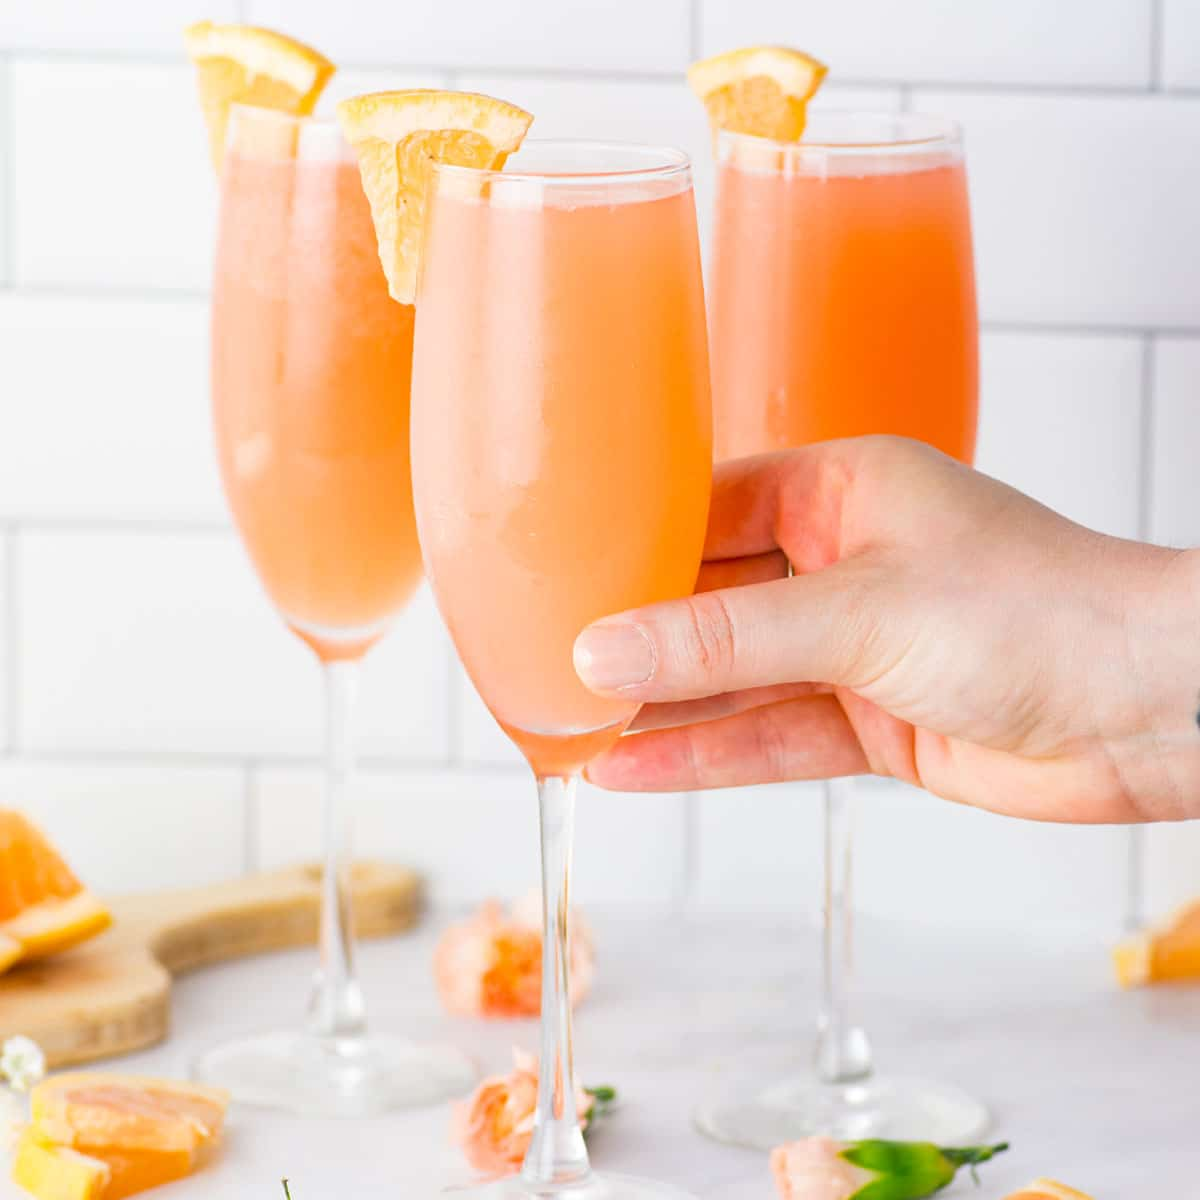 rose grapefruit mimosa with grapefruit slices on a marble counter